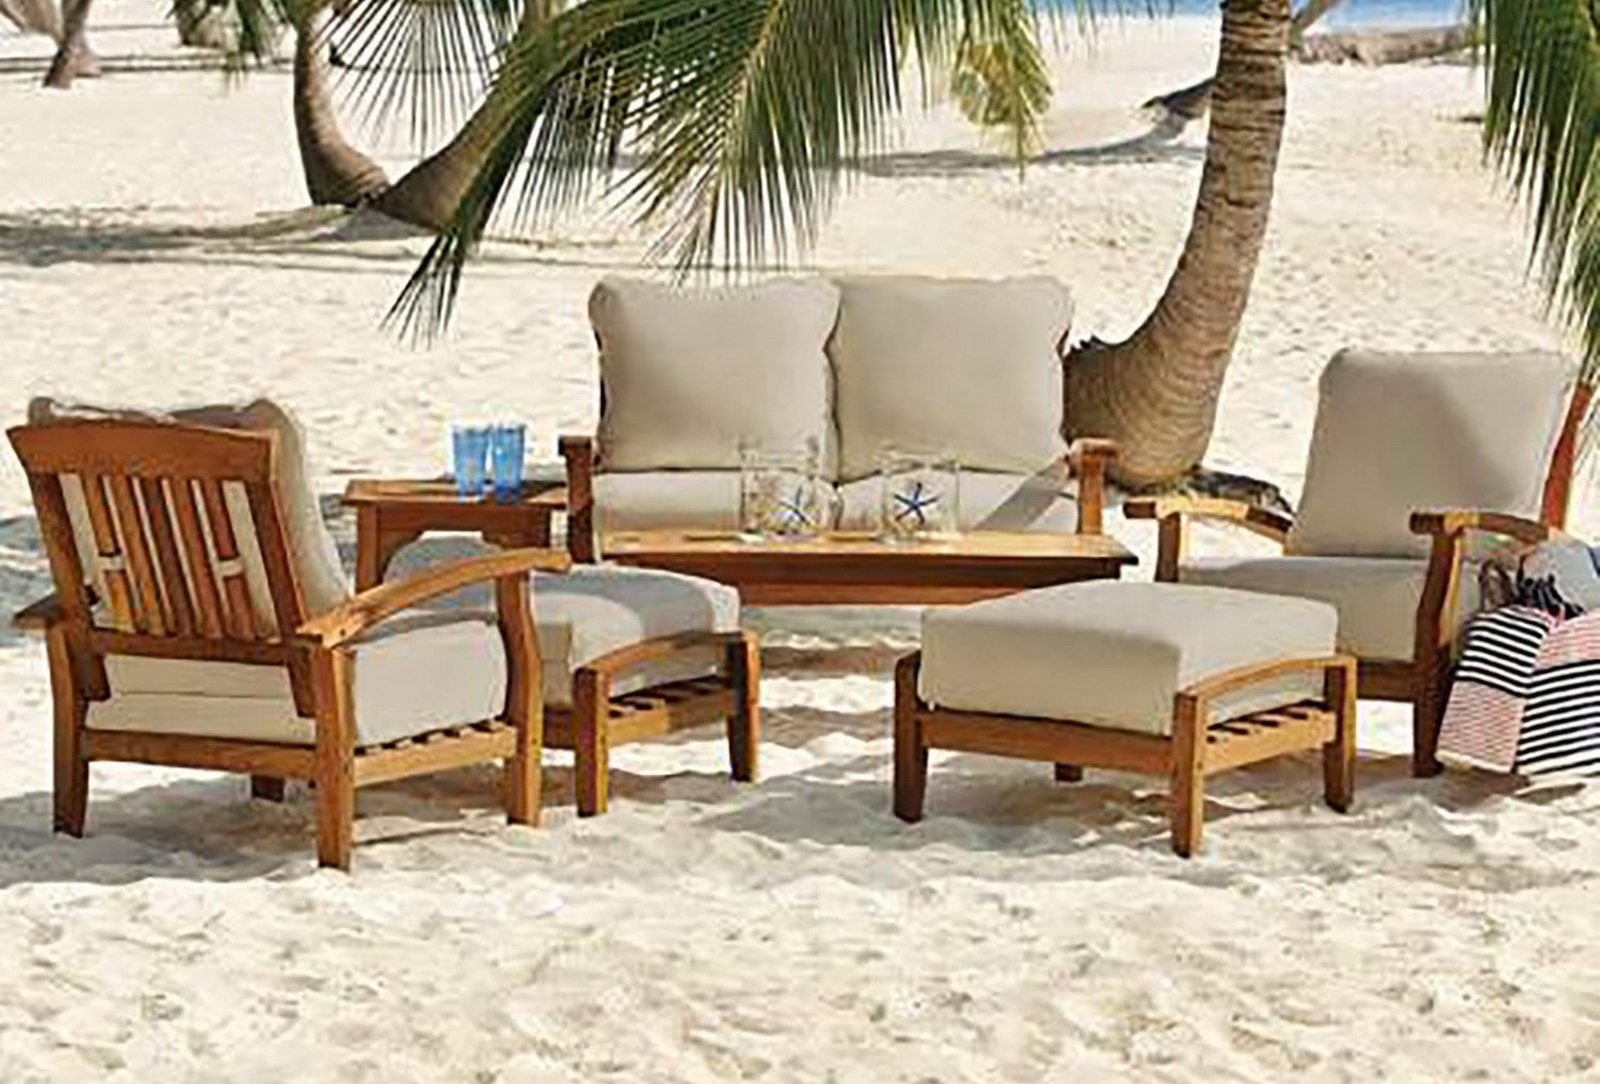 Wood Outdoor Patio Furniture Alternative Views Wood Outdoor Patio